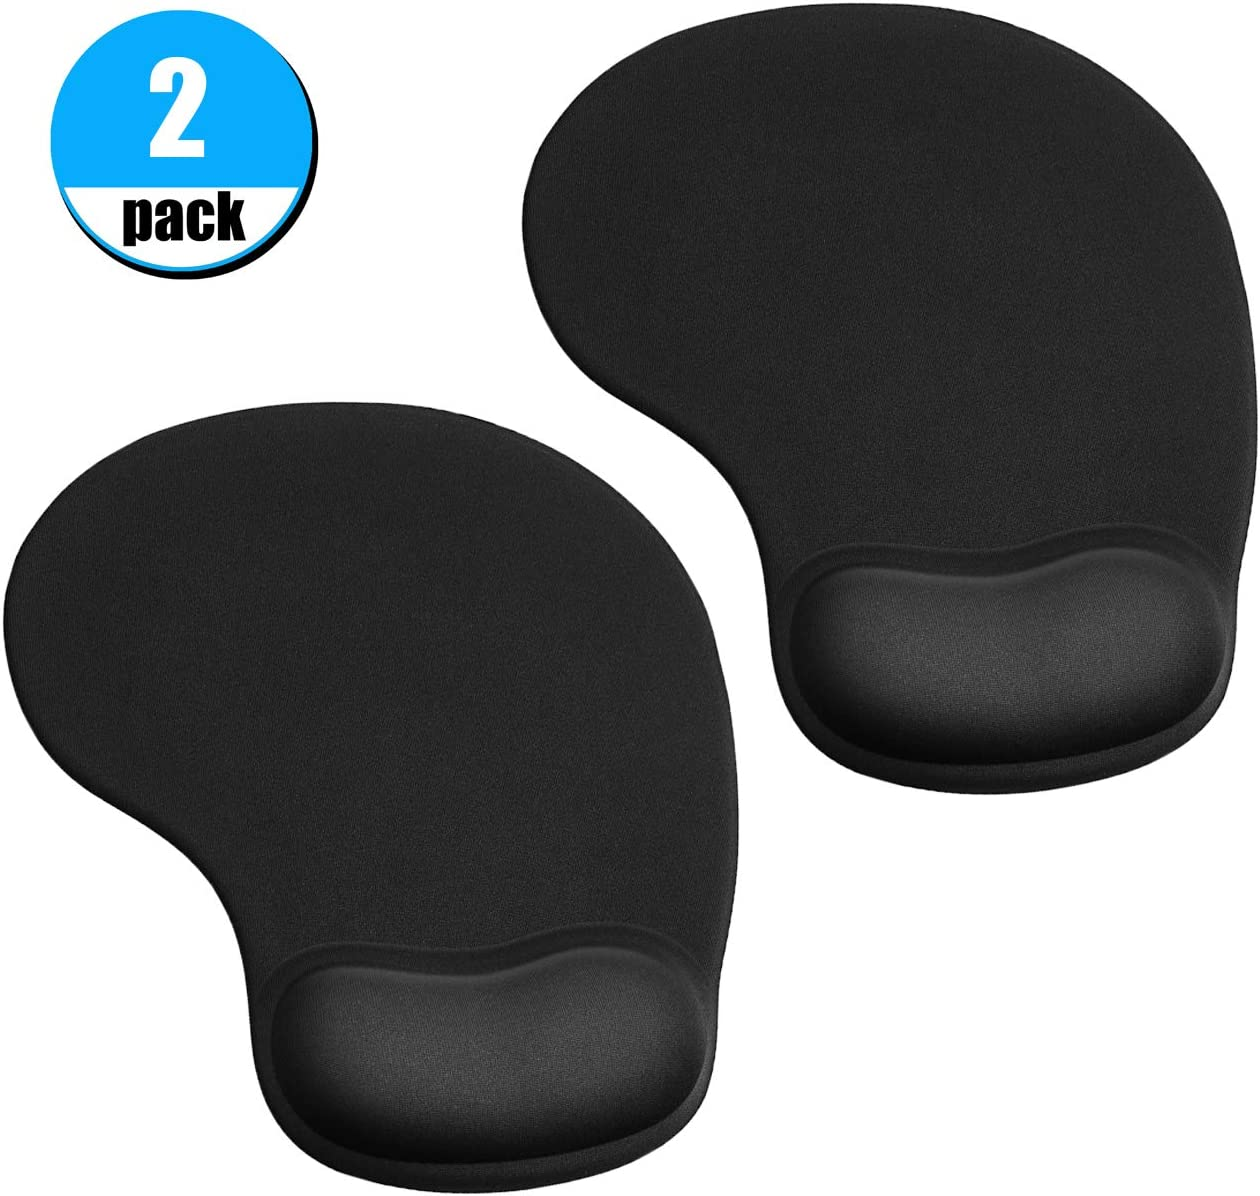 JIKIOU 2 Pack Mouse Pad, Ergonomic Mouse Pad with Gel Wrist Rest Support, Comfortable Wrist Rest Mouse Pad with Non-Slip PU Base for Computer Laptop Home Office Travel, Small Size, 9 x 7.5 inch, Black